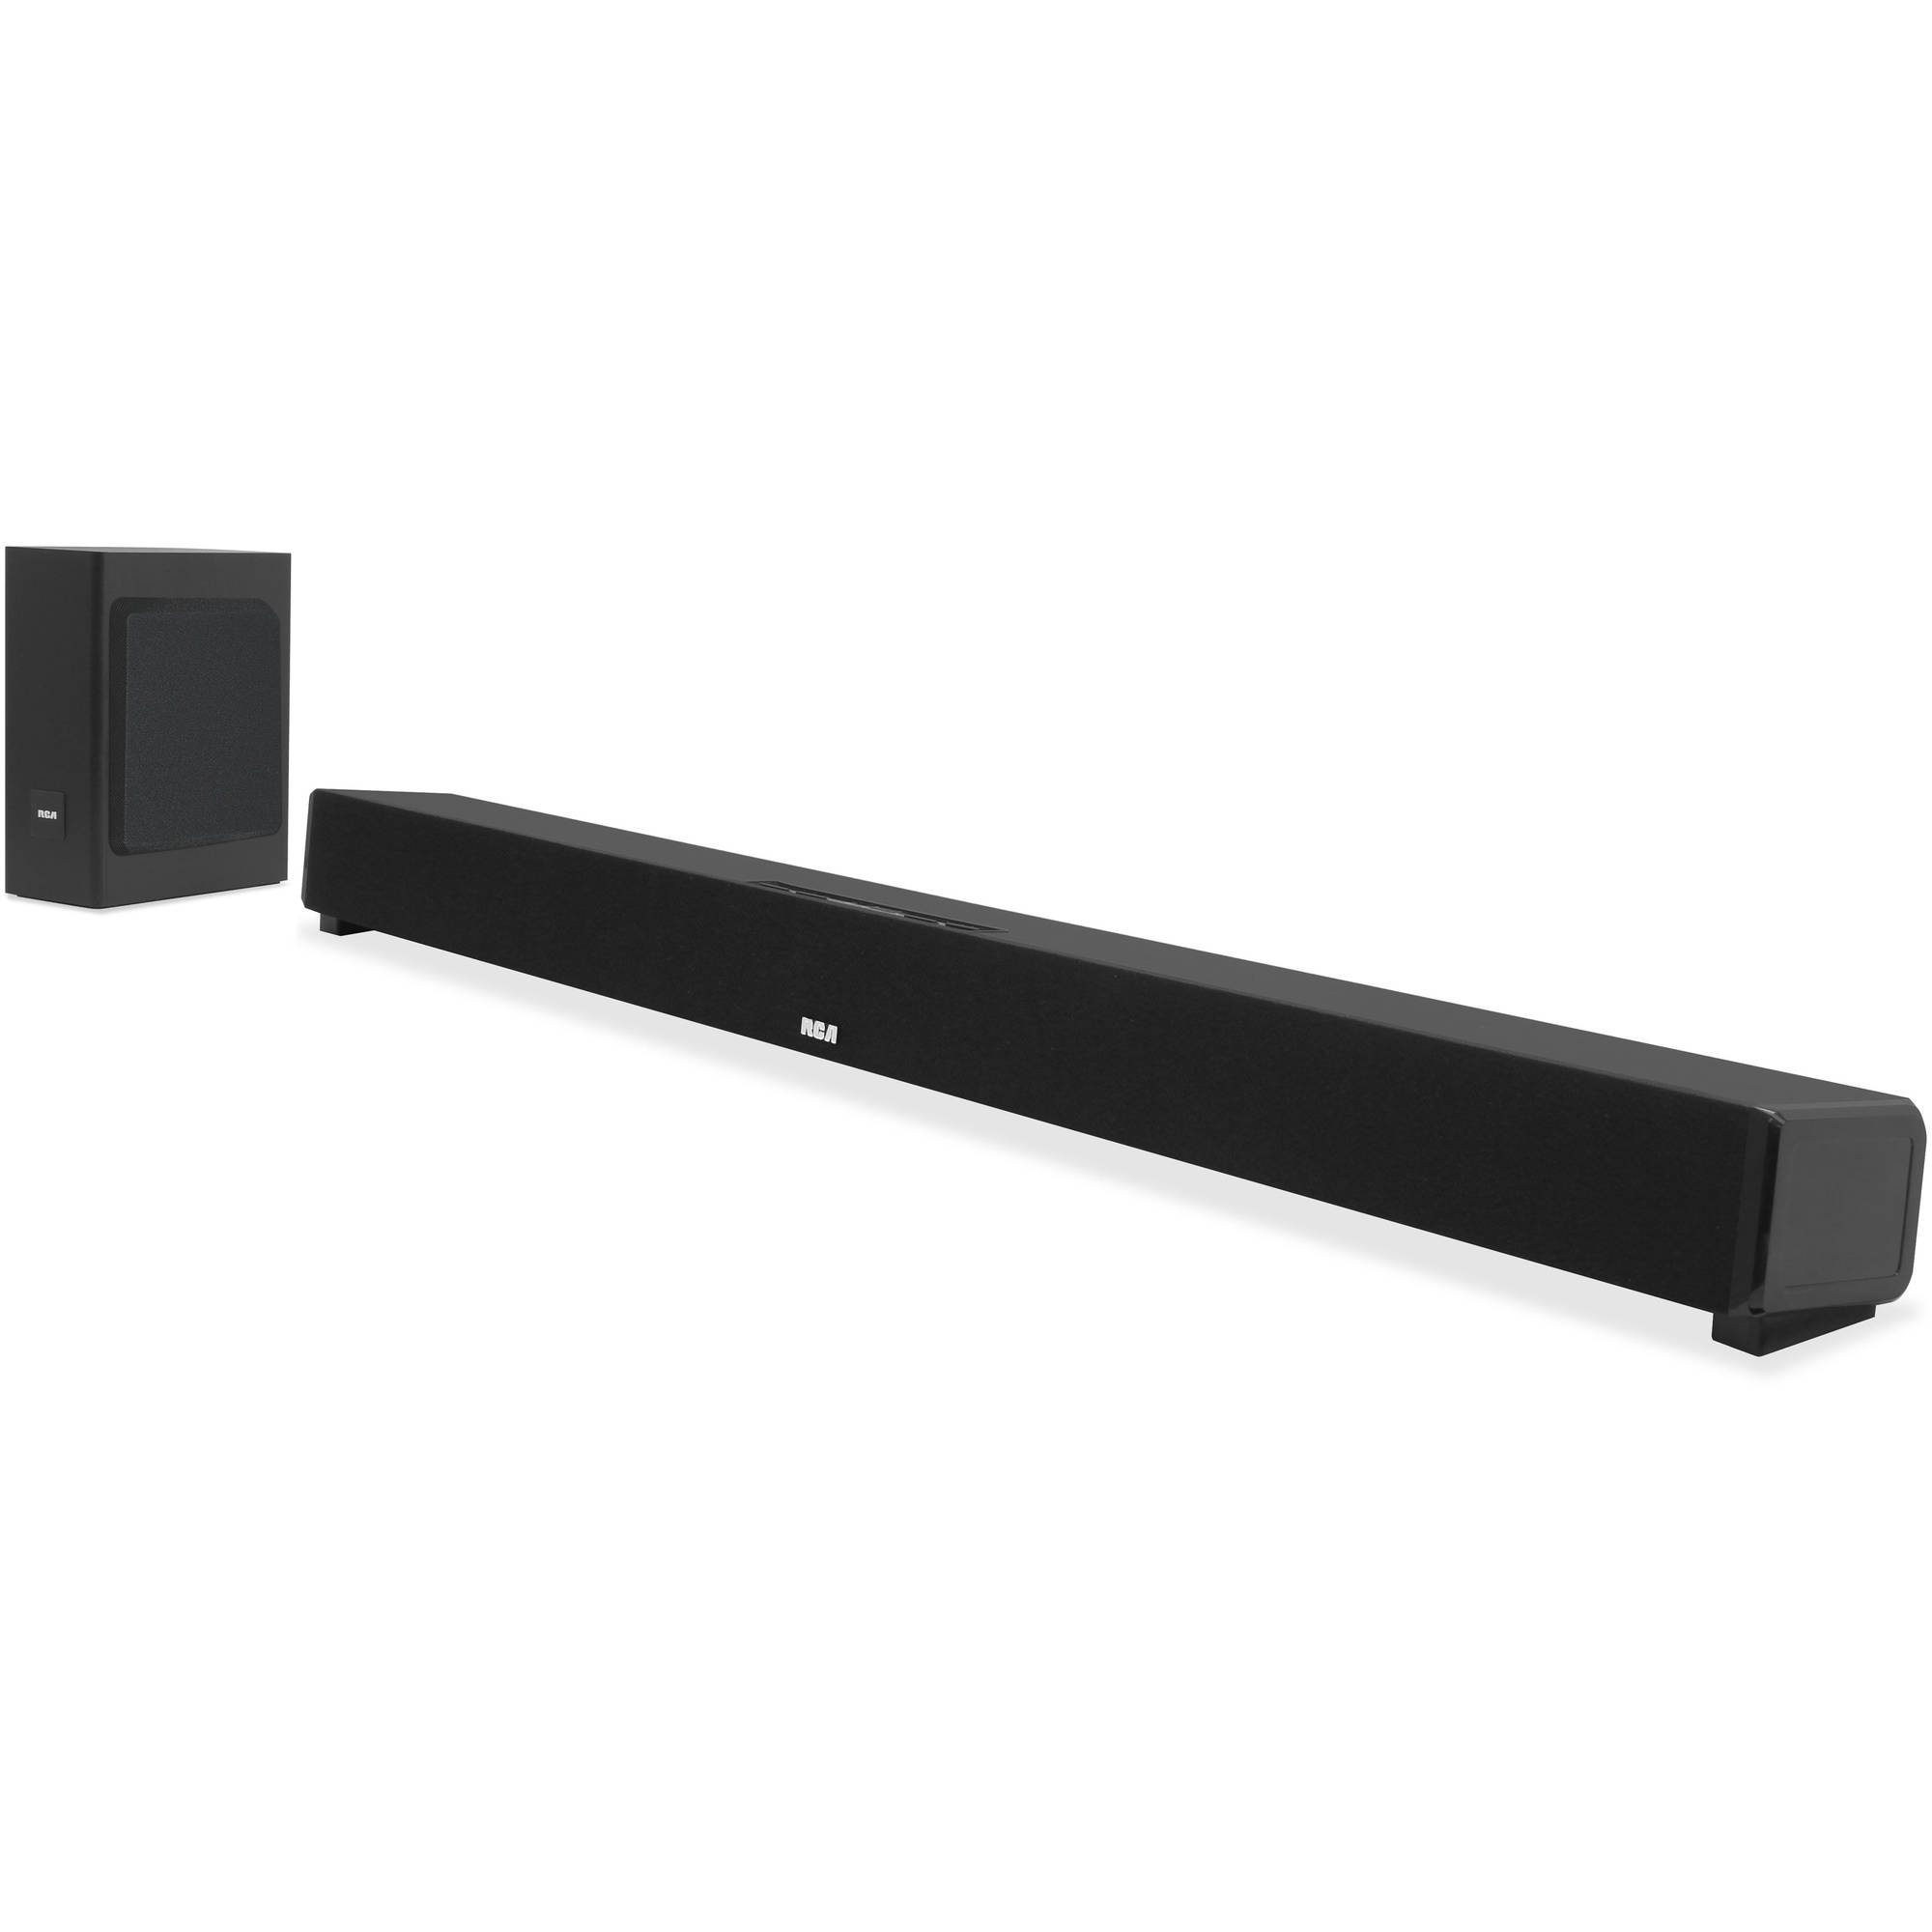 philips sound bar hookup Sound bar connection and setup guide you can still find a no-frills sound bar you can hook up and have working in no time flat—i'll cover those here.